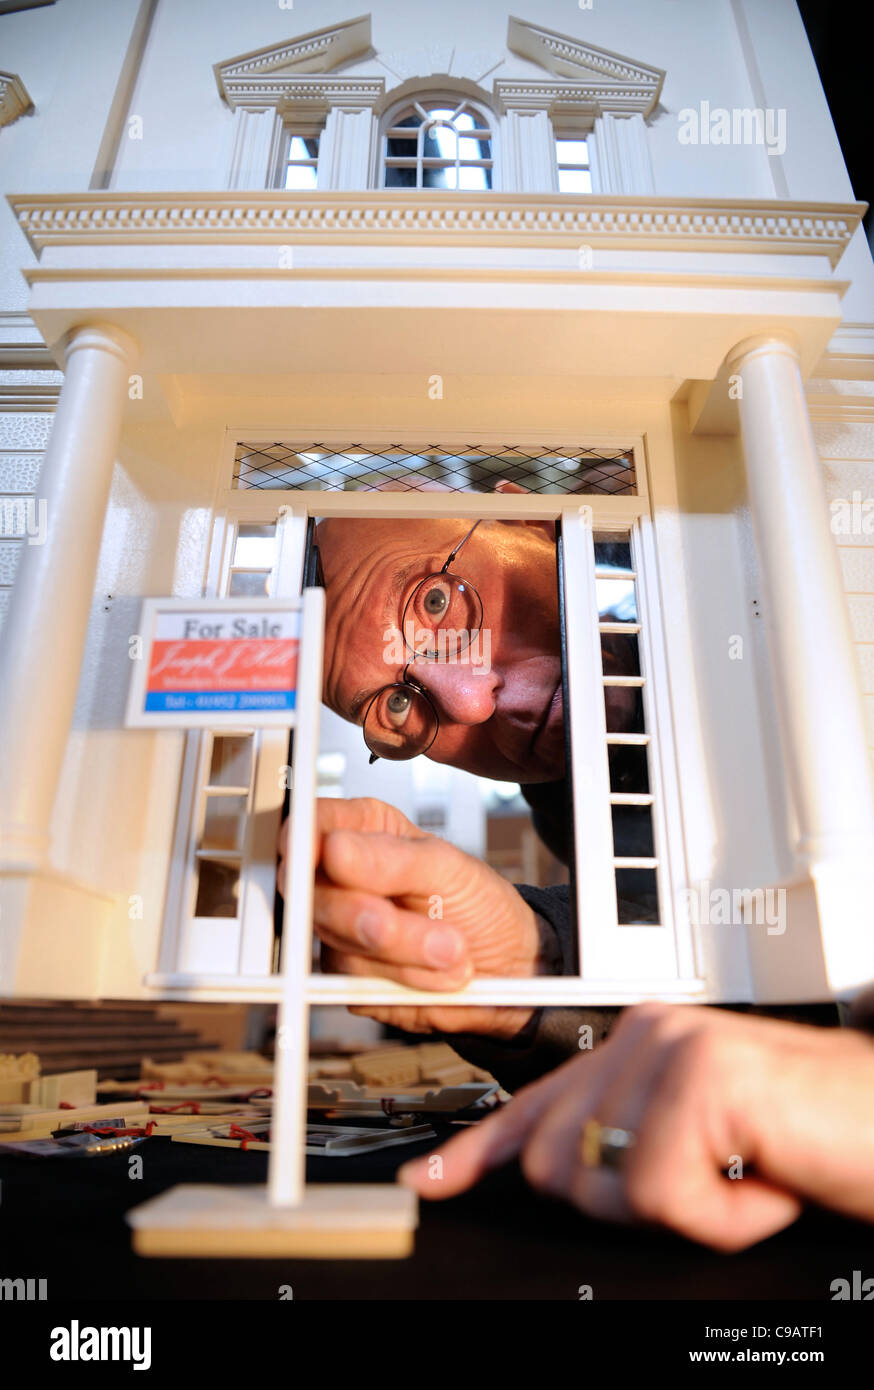 A miniatura enthusiast places a for sale outside his regency mansion dolls' house at the miniature modelling - Stock Image